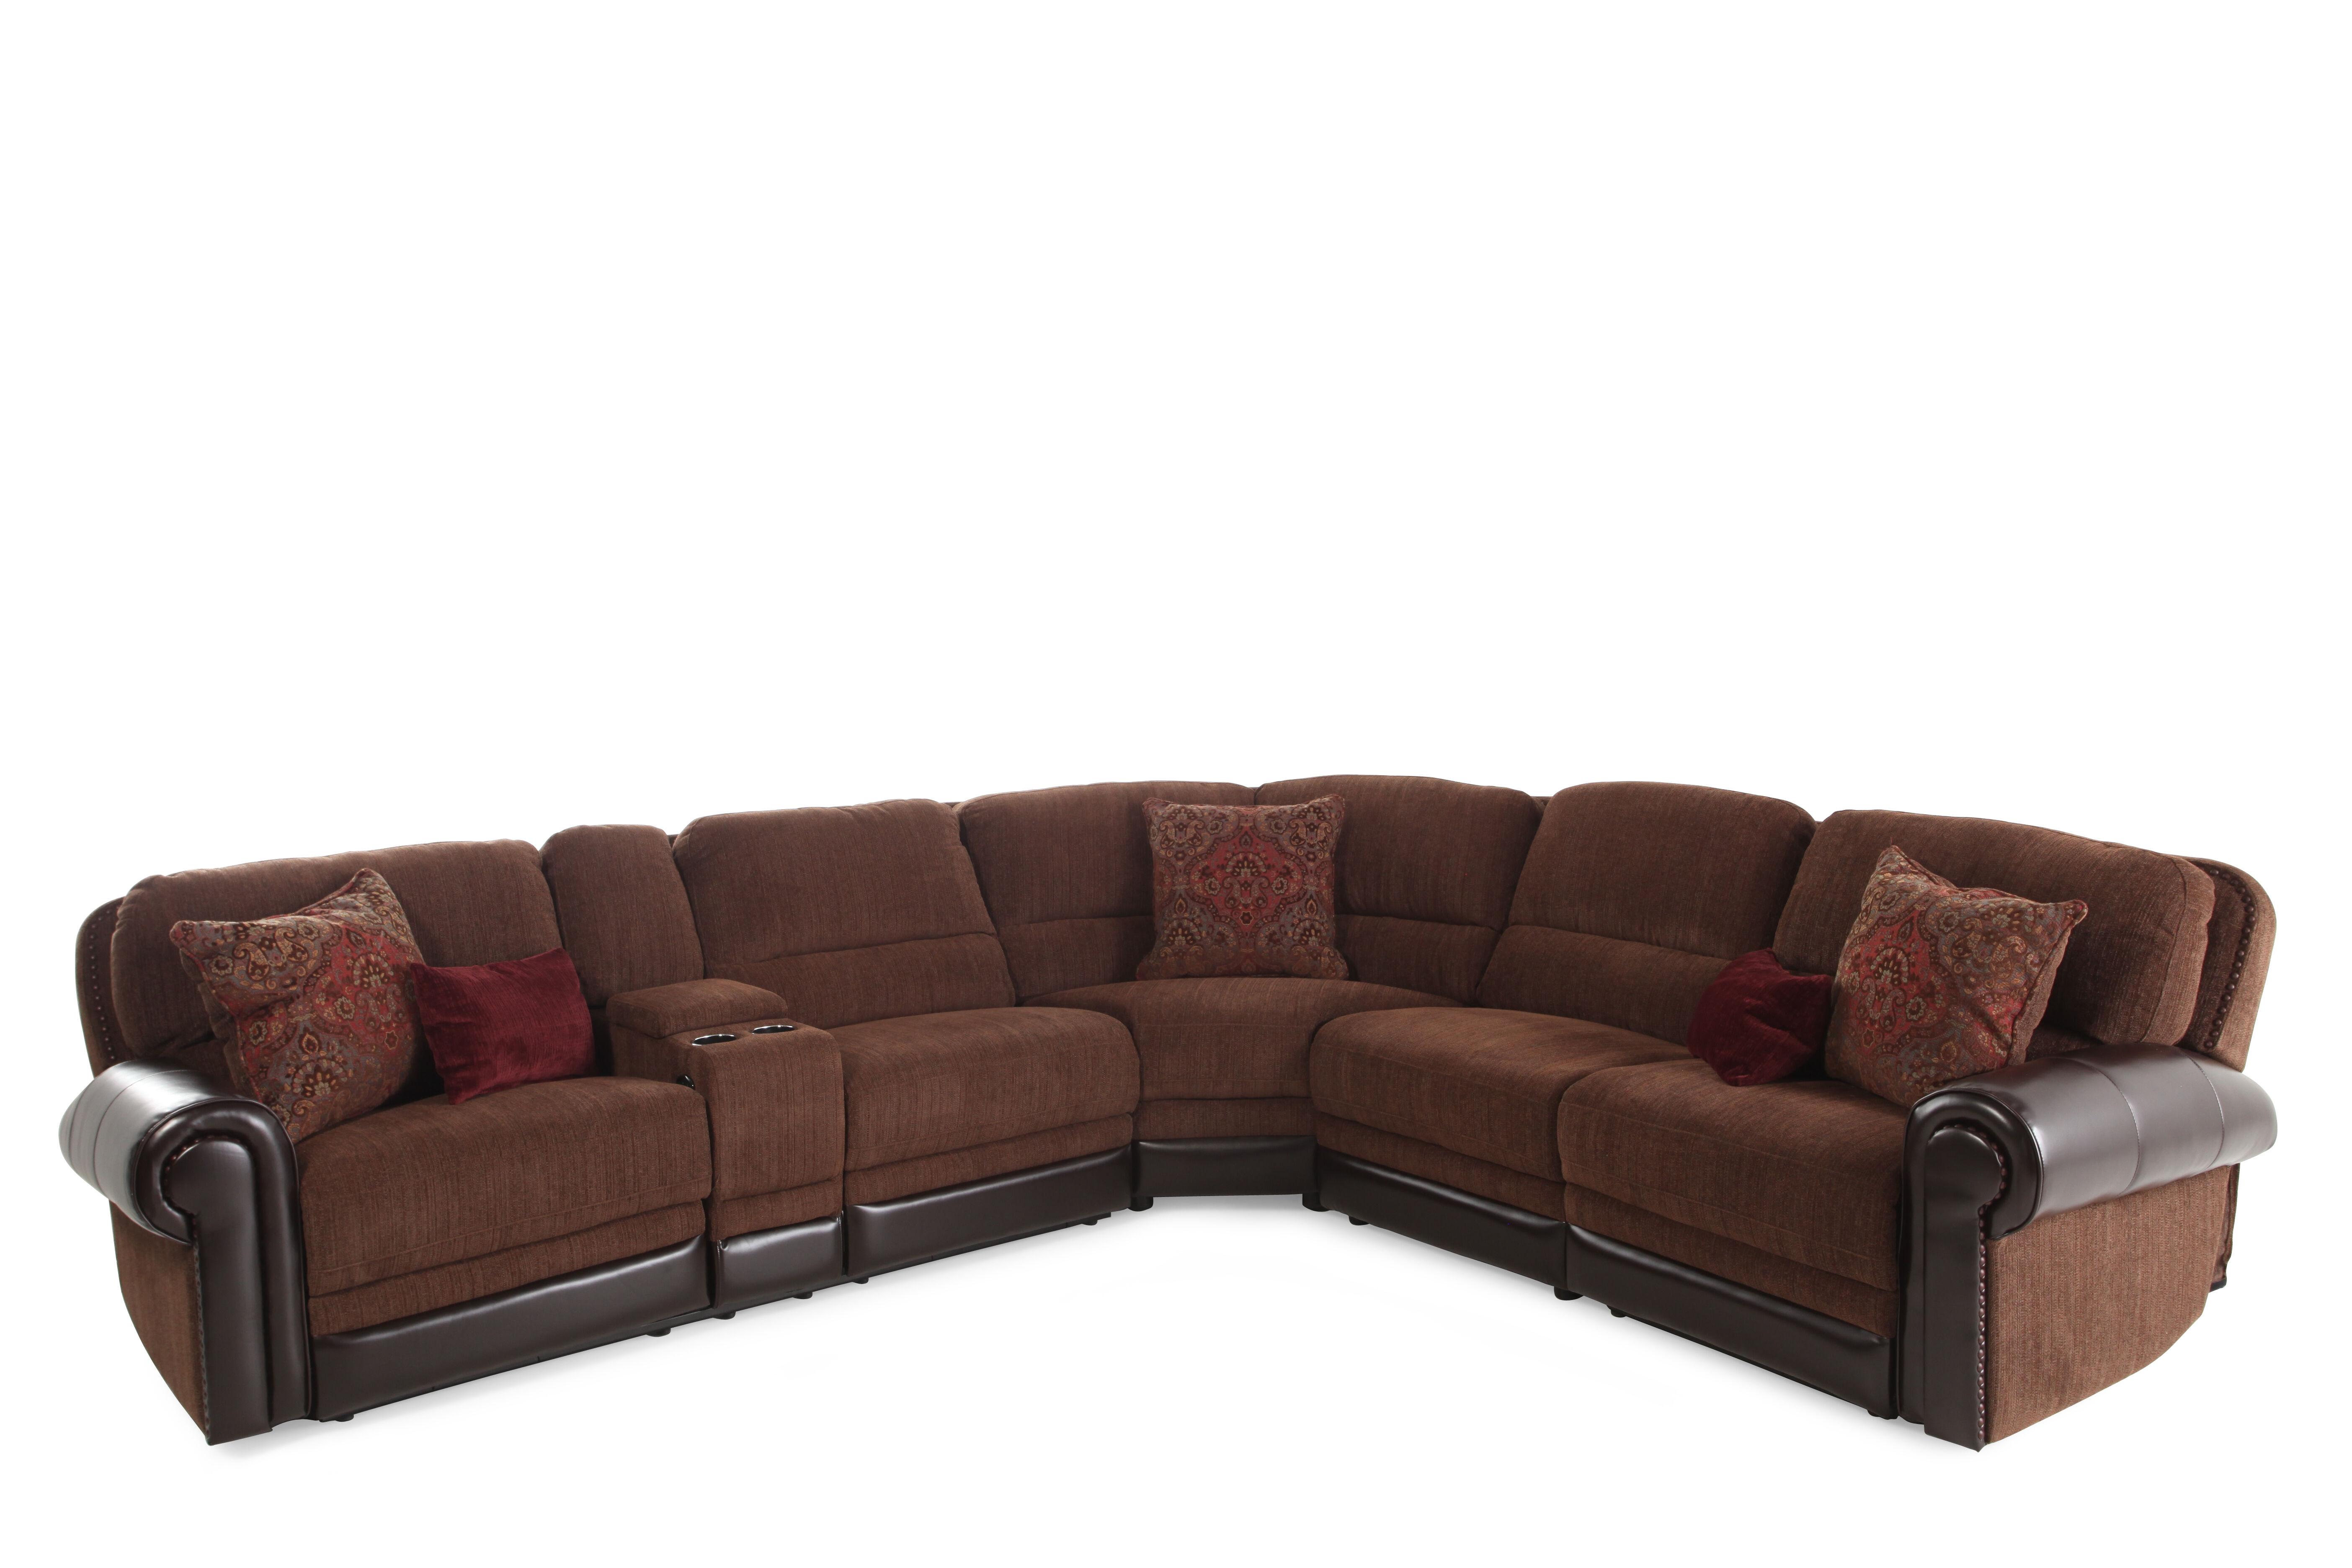 Images Traditional 98u0026quot; Tapestry Patterned Power Reclining Sectional In  Dark Russet Traditional 98u0026quot; Tapestry Patterned Power Reclining  Sectional In ...